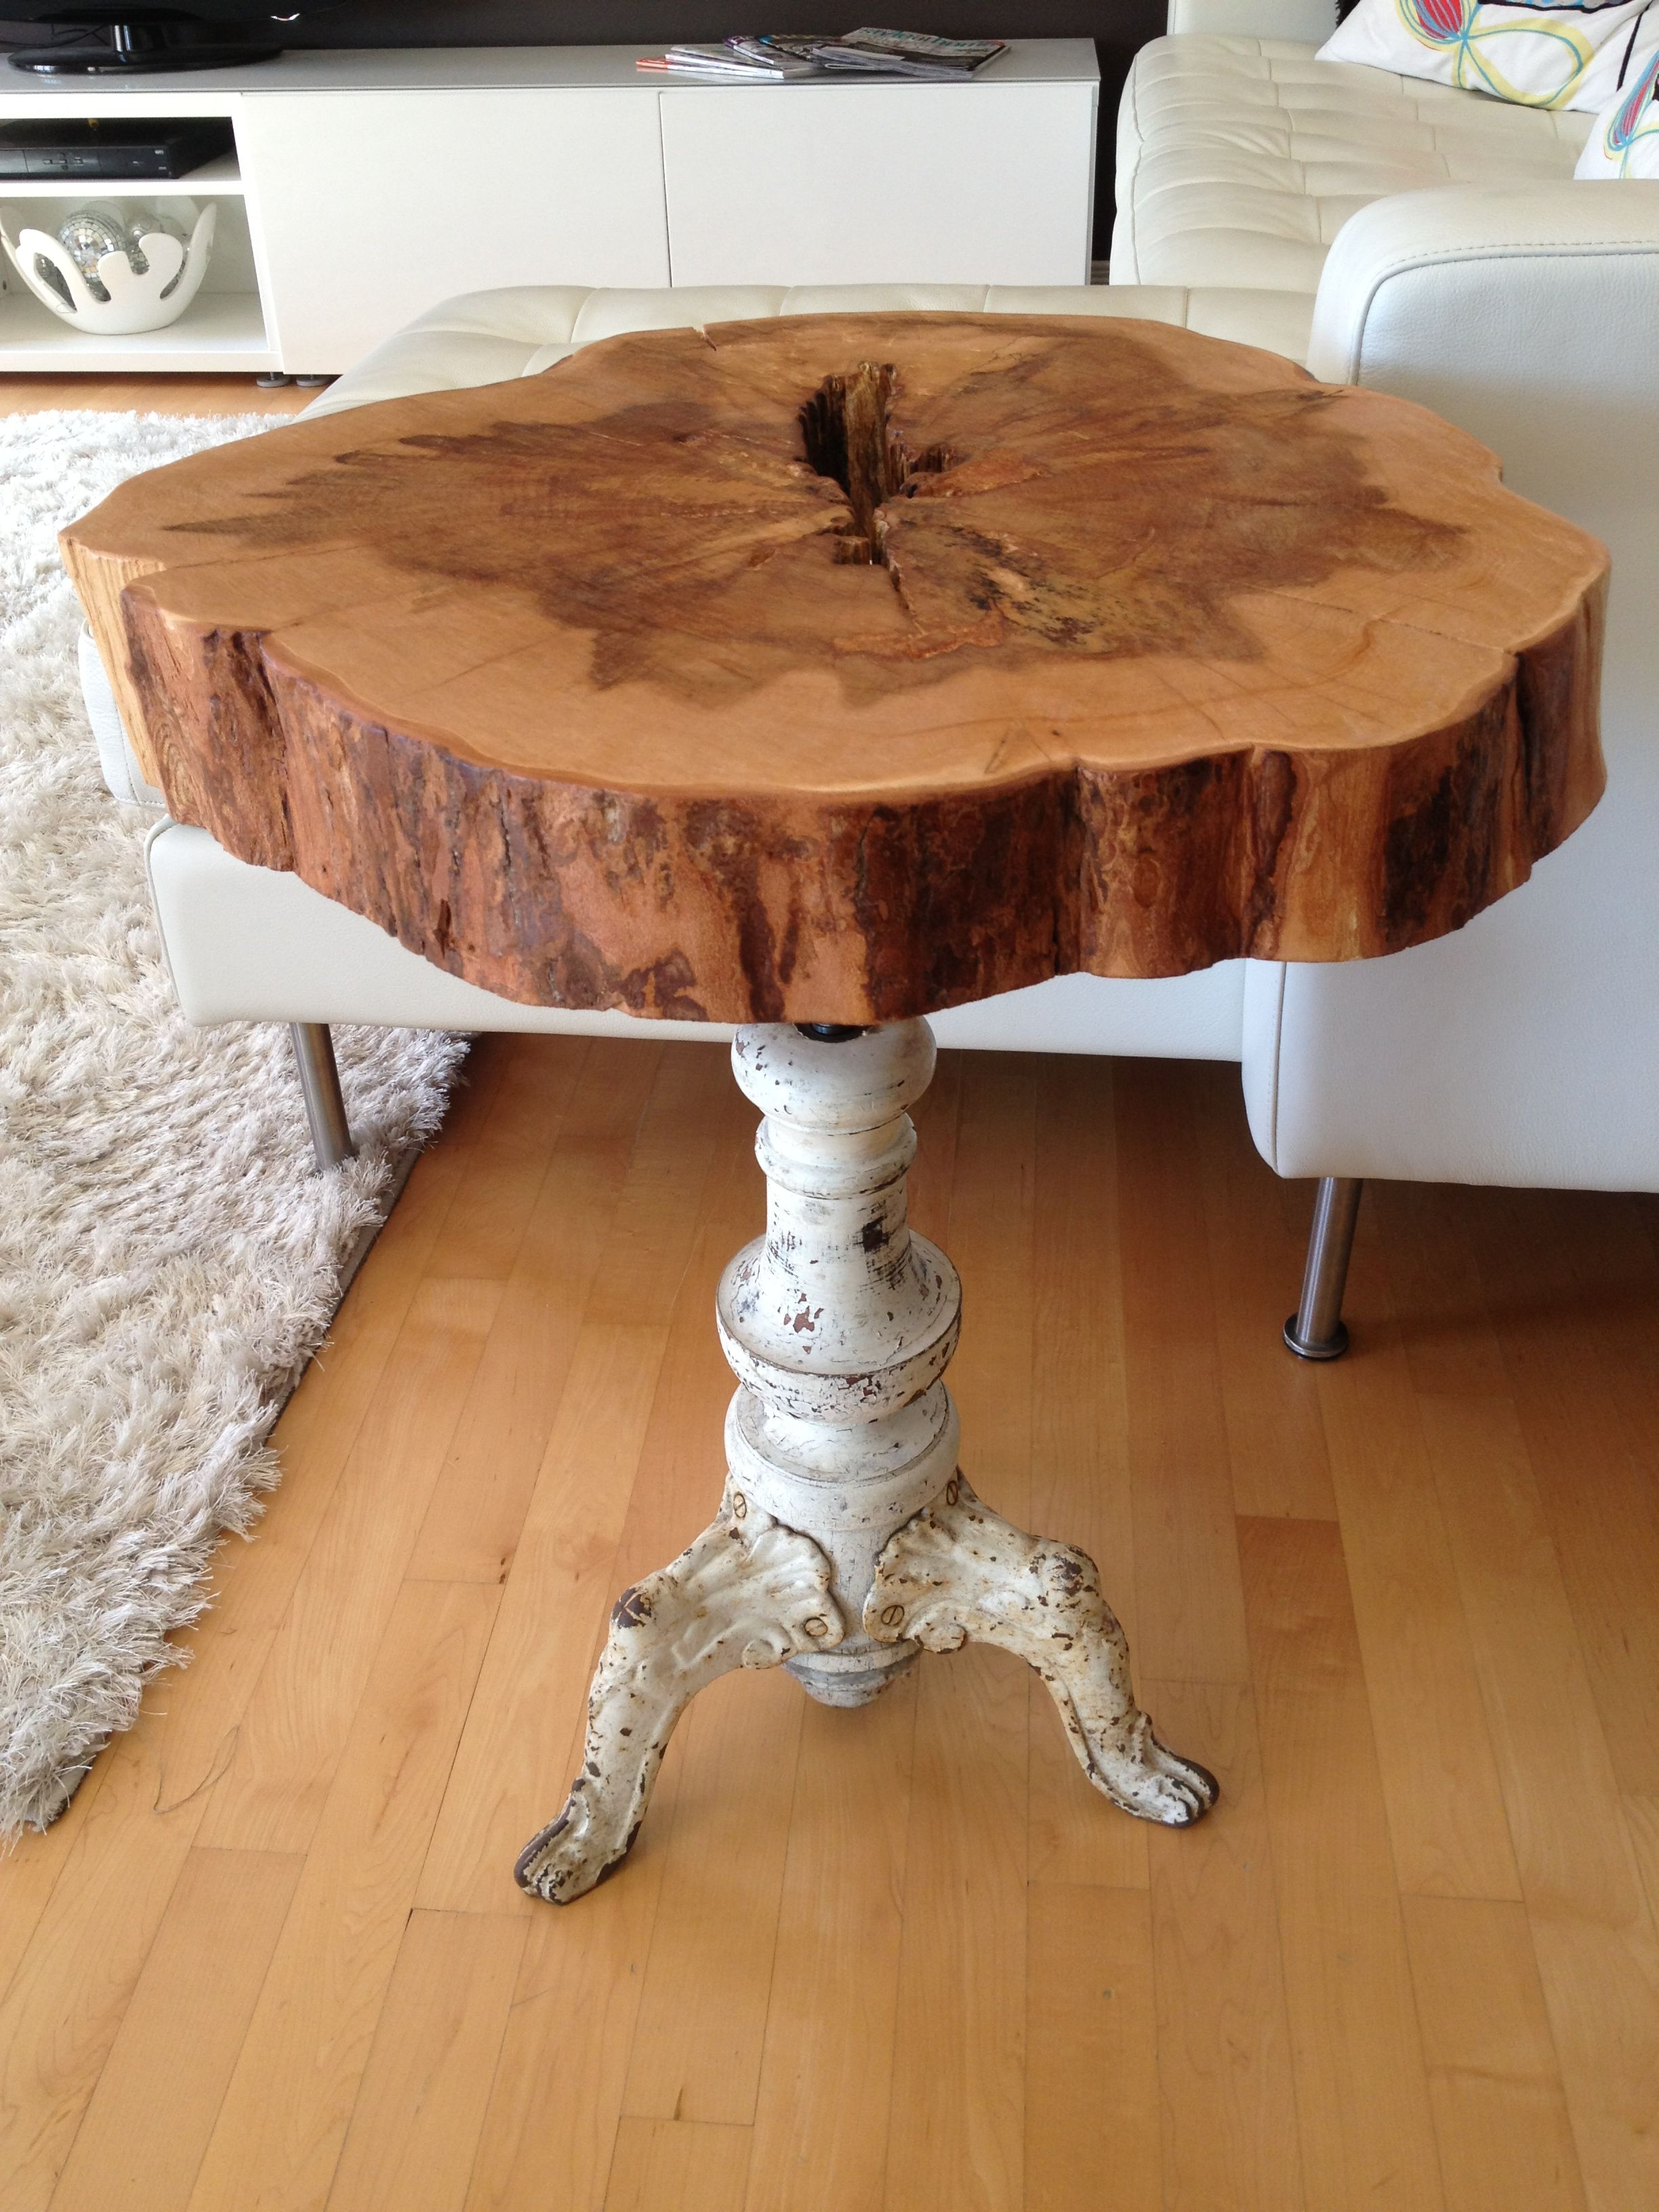 diy tree stump table ideas how make them wood slice accent using recycled materials for why not smoked glass coffee outdoor and chairs with umbrella furniture blankets garden